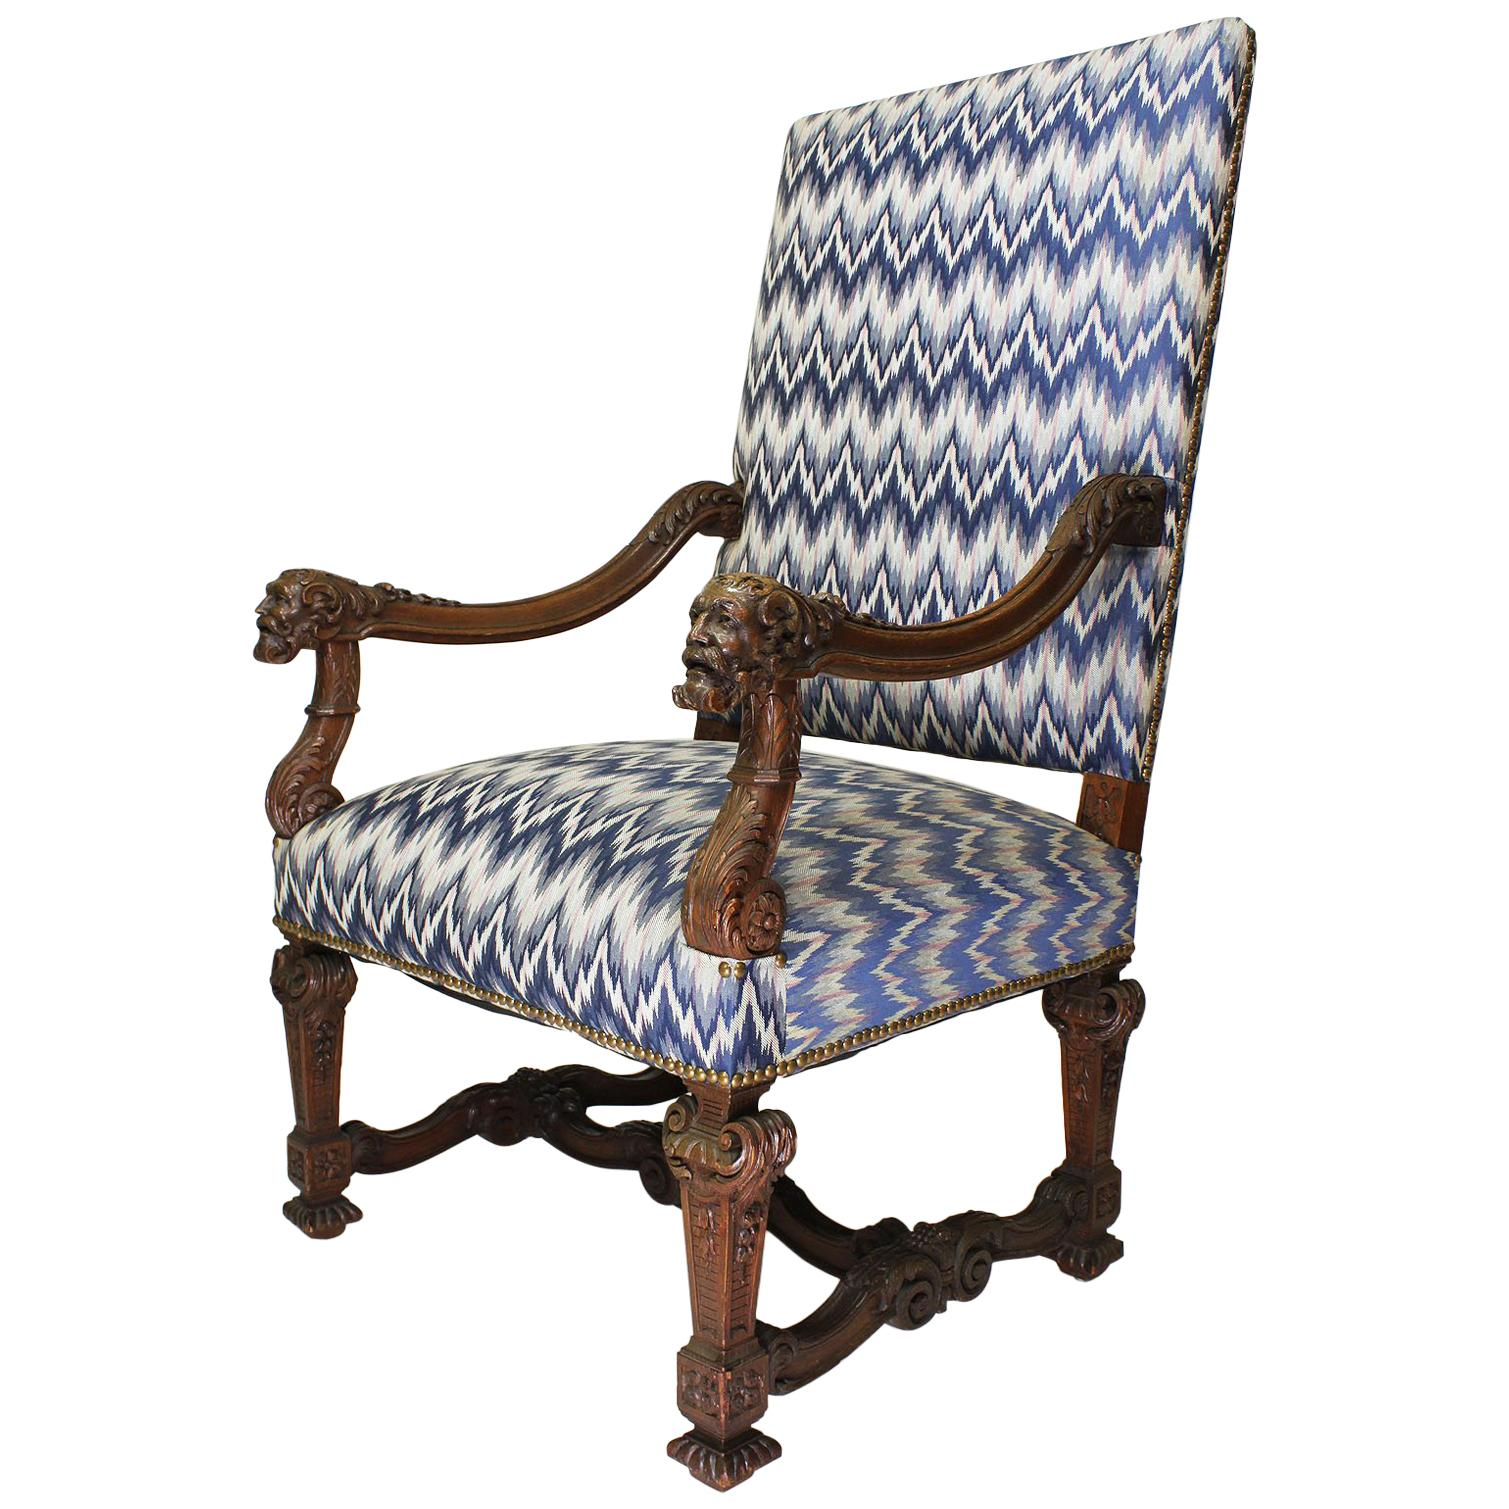 Fine French 19th Century Louis XIV Style Baroque Carved Walnut Throne Armchair